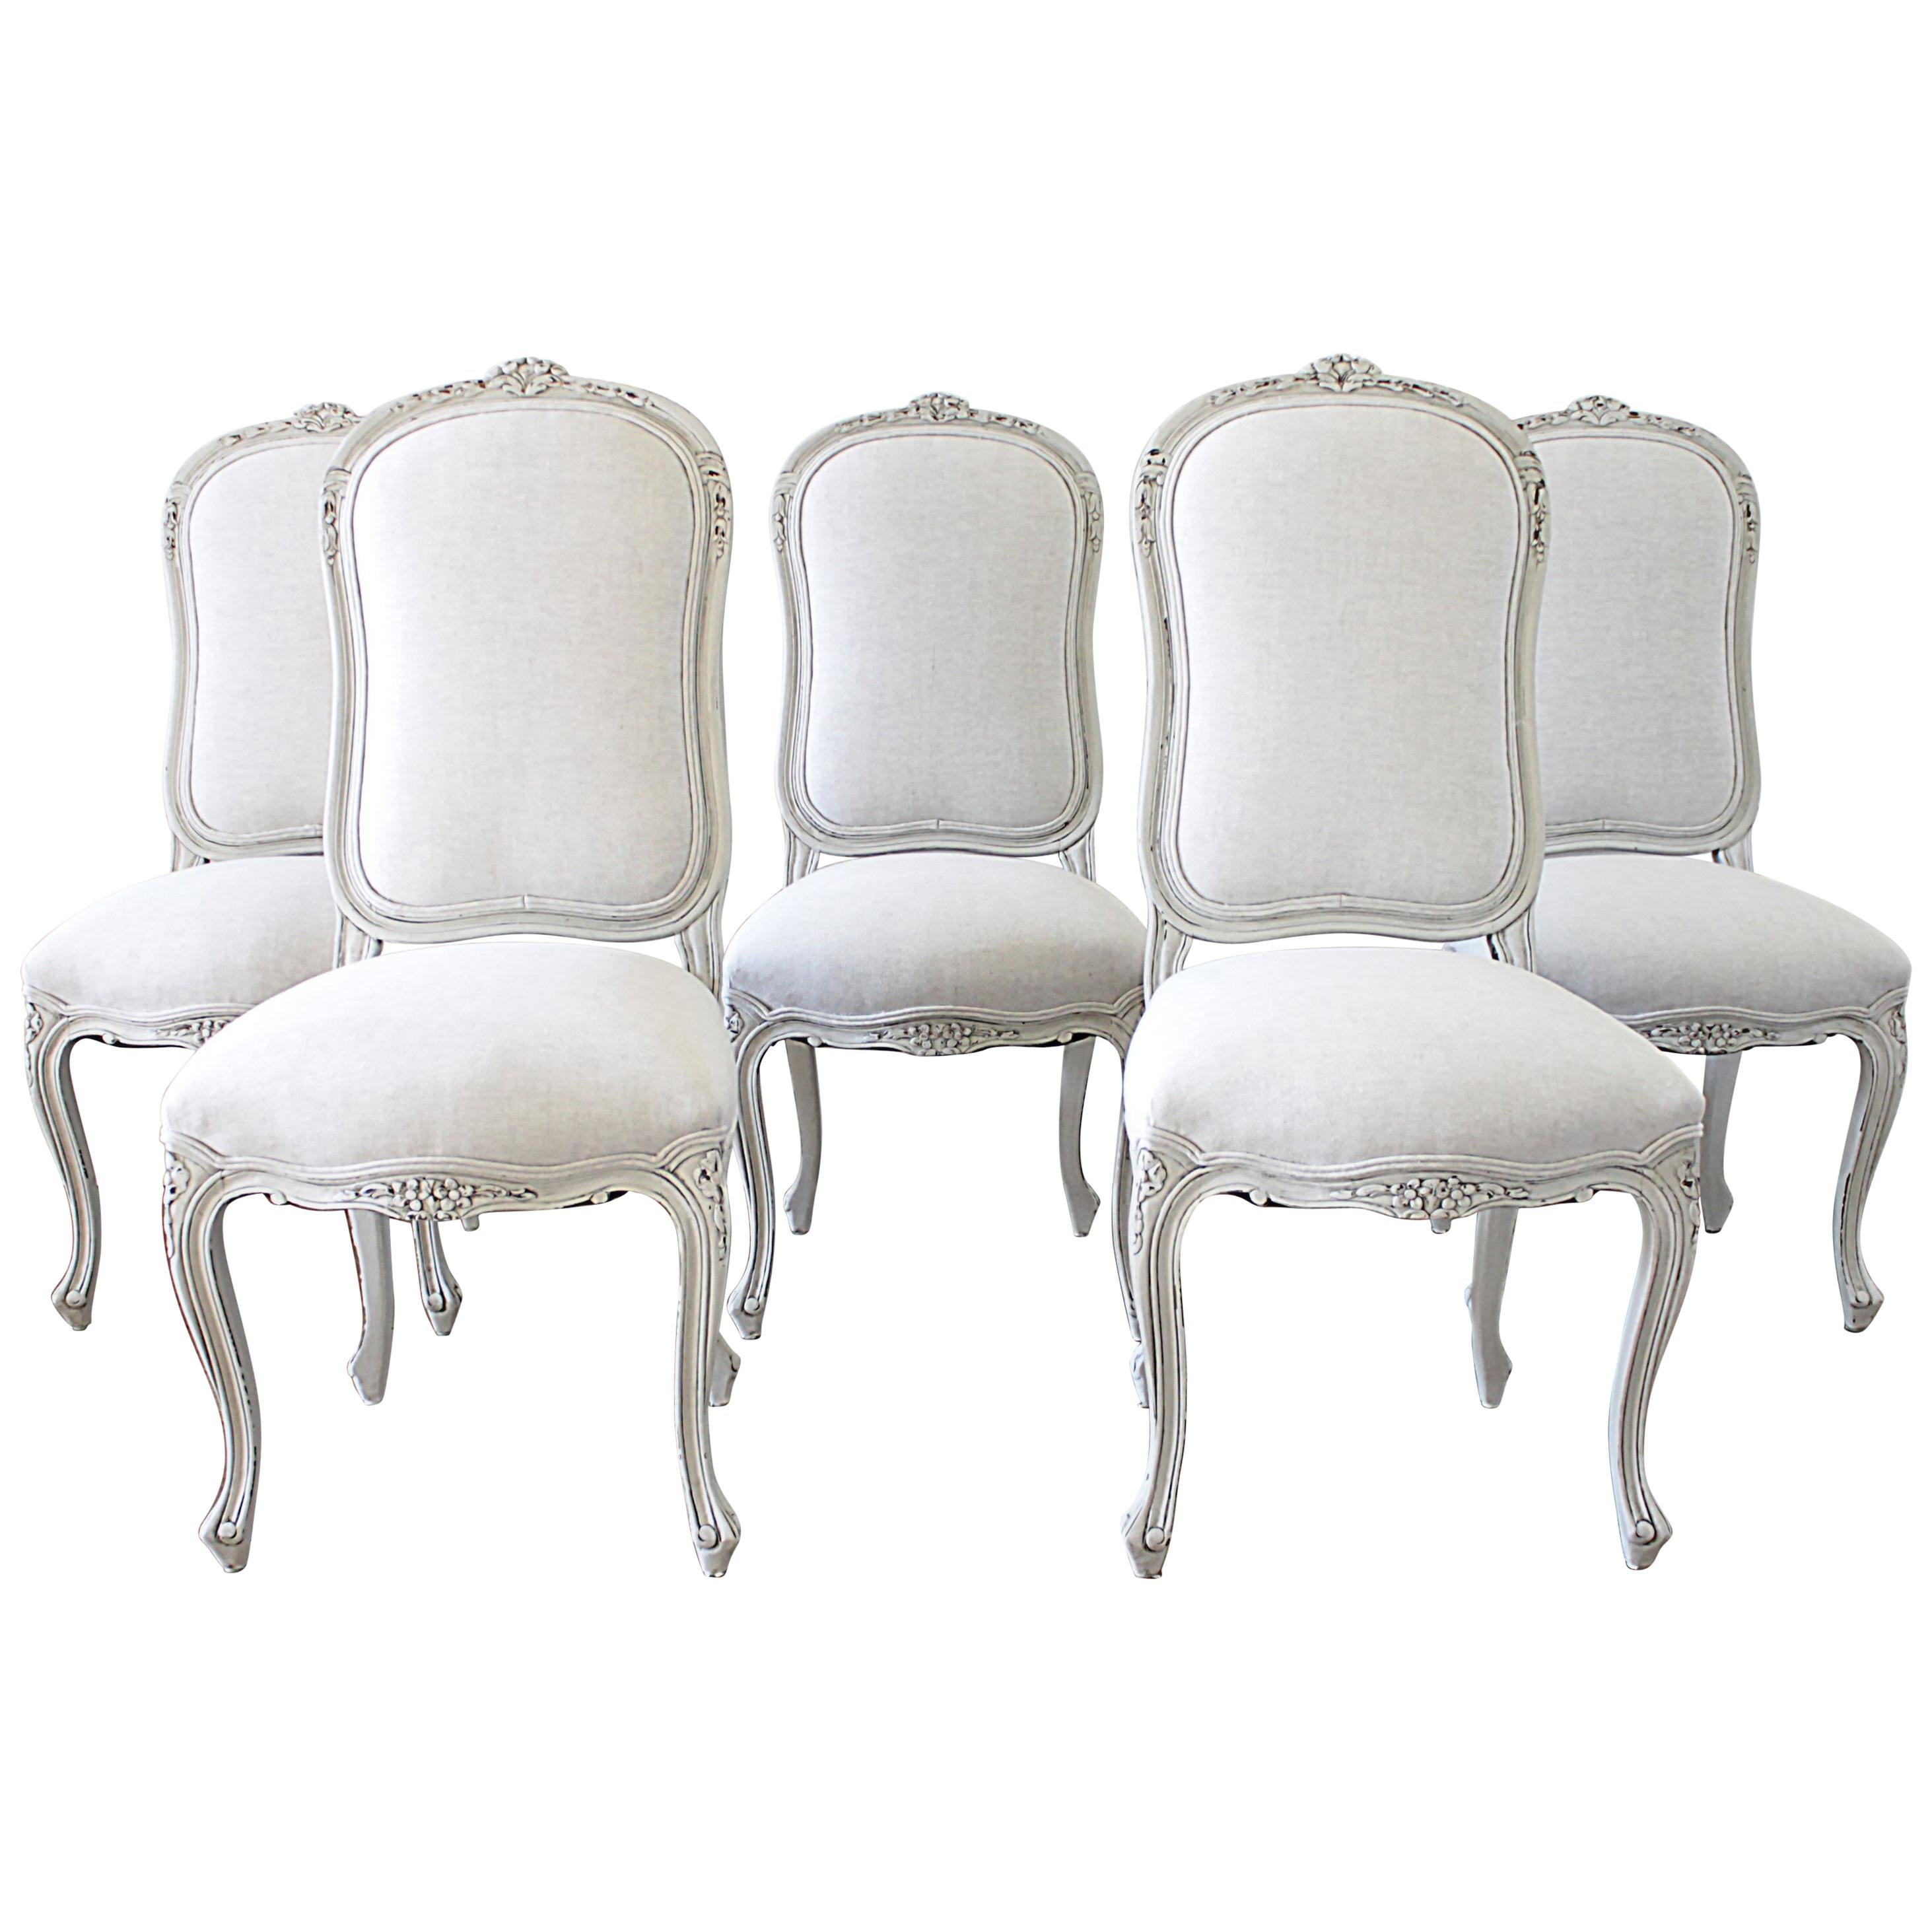 Awesome Set Of 5 Painted And Upholstered Dining Room Chairs In Belgian Linen For  Sale